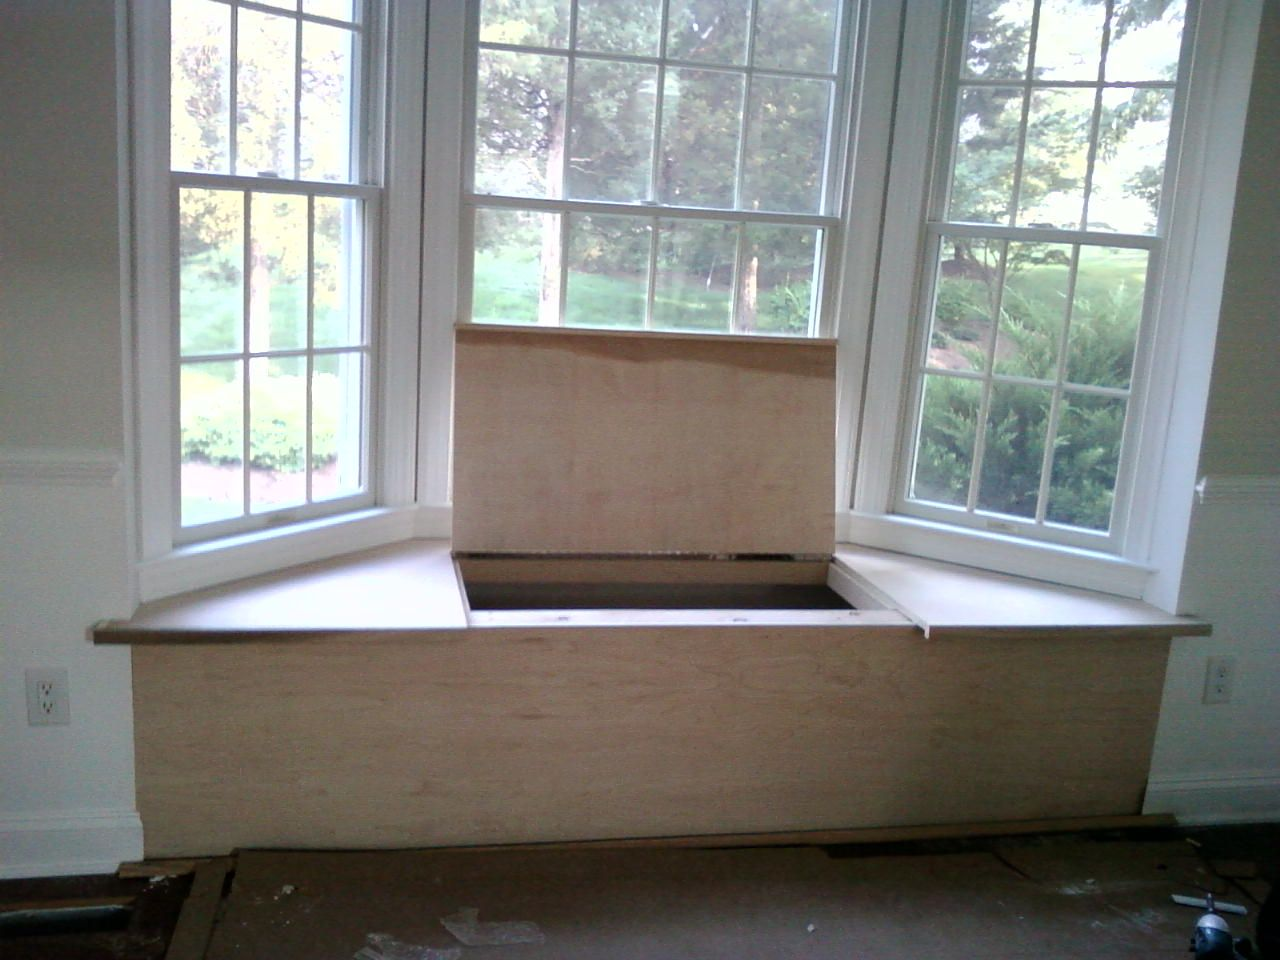 Window Seat Living Room Someday I Will Have A My Picture Window With A Seat To Sit And